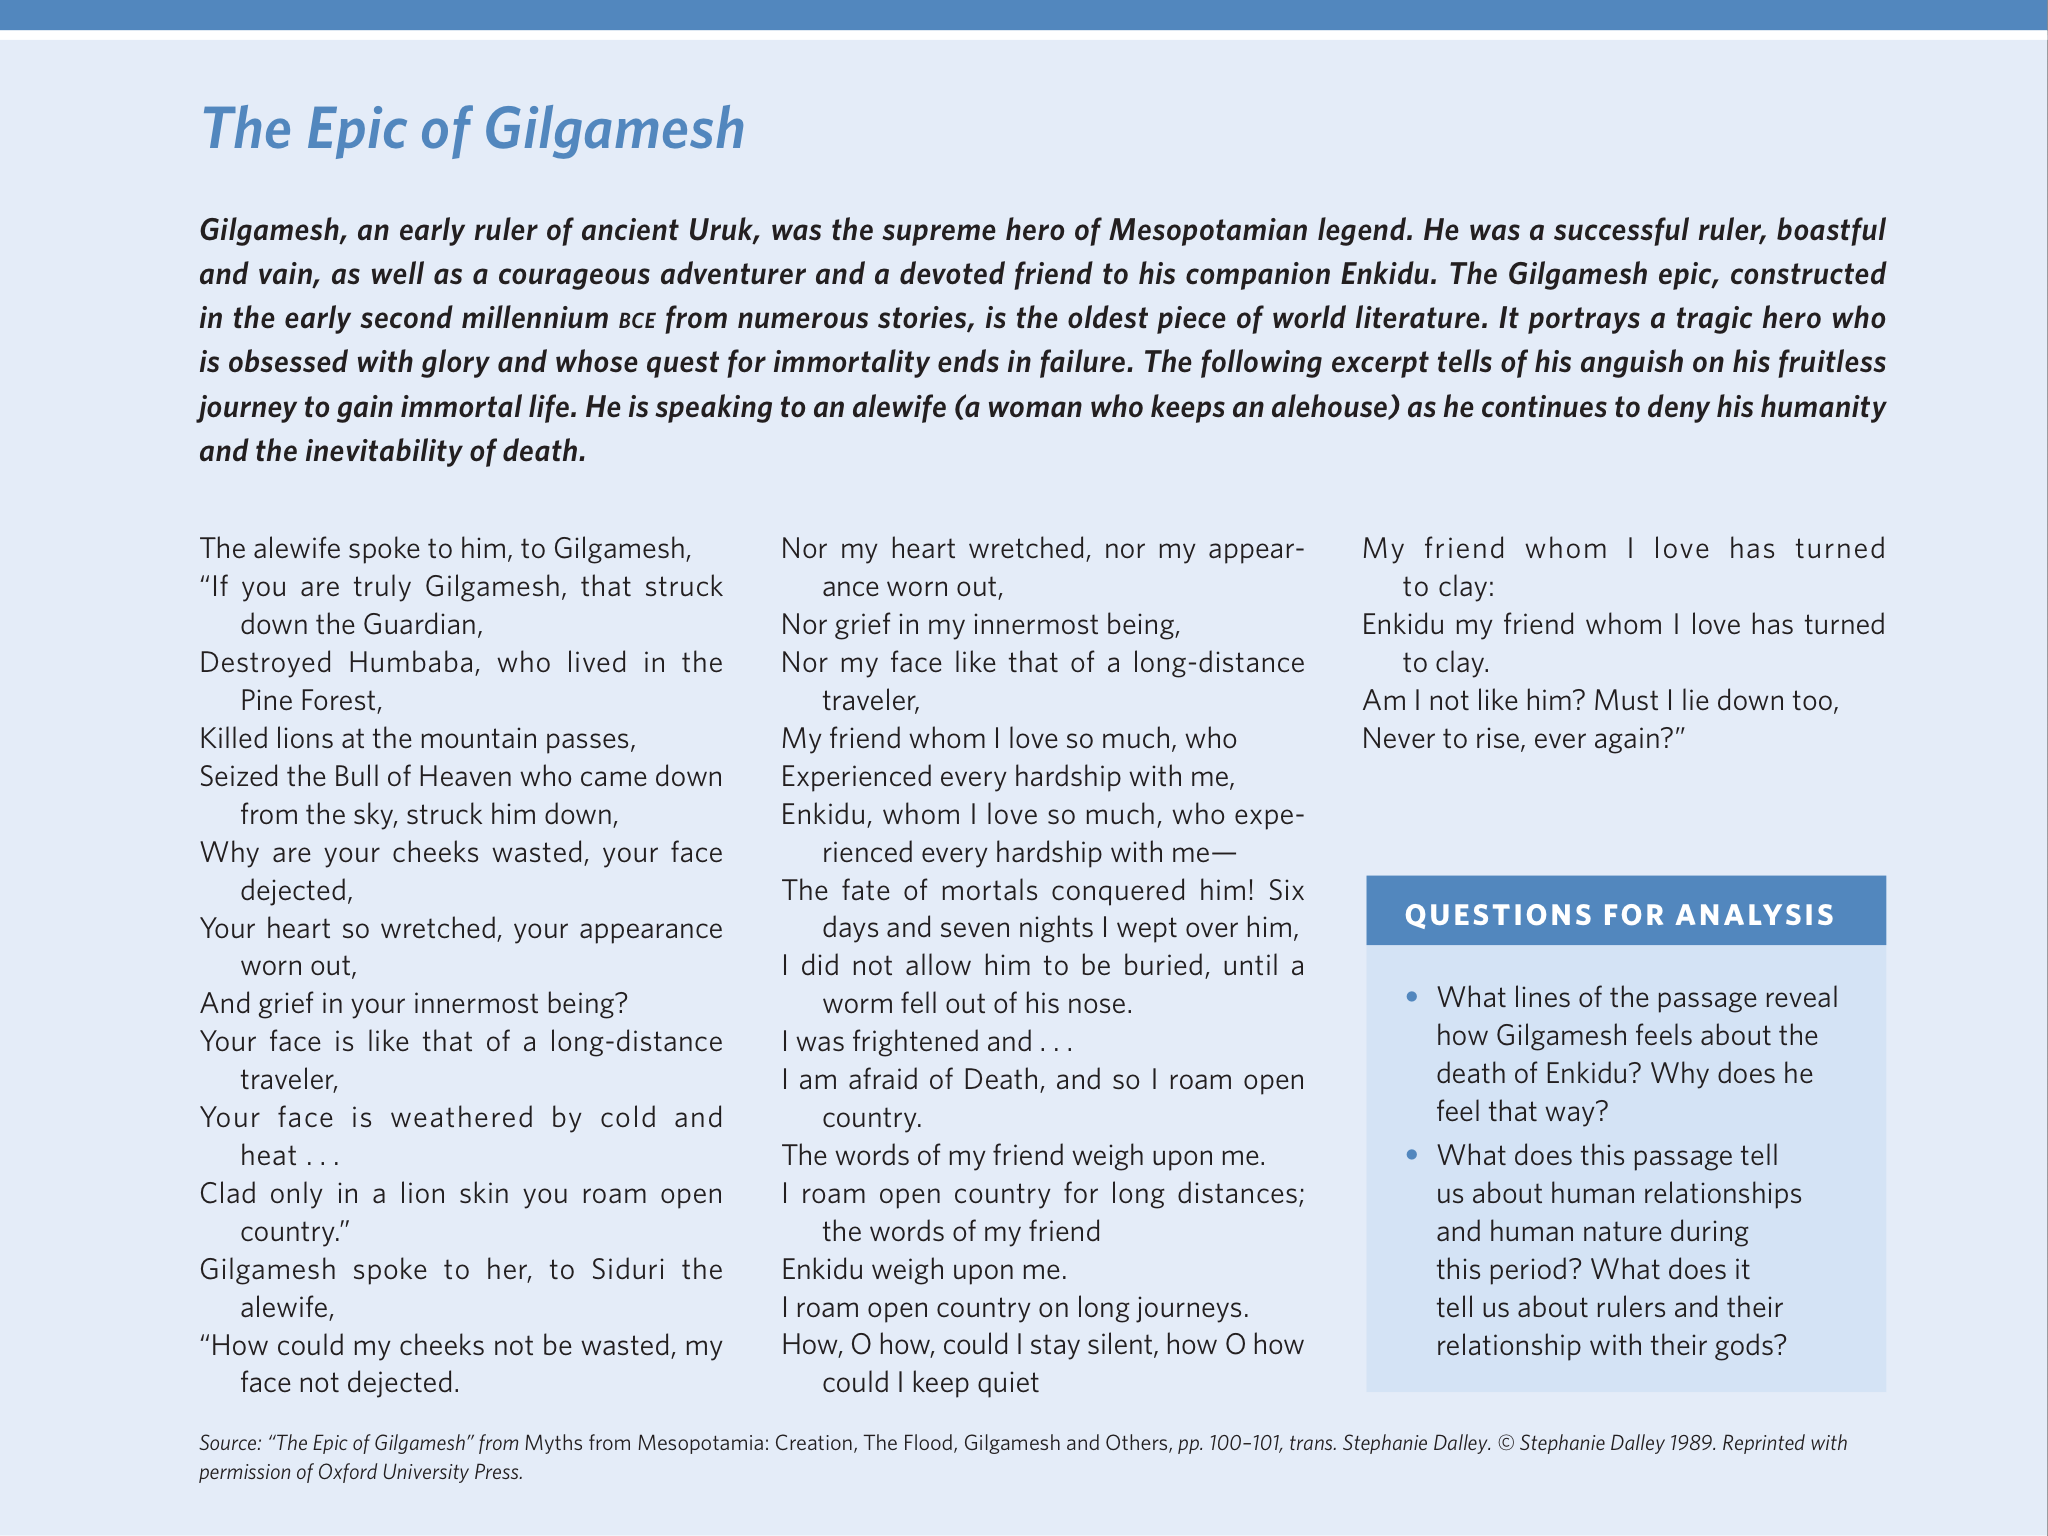 essays on gilgamesh The epic of gilgamesh is very complex, but it is also considered one of the  greatest epics in the western literature in the story we can find several  contradictions,.